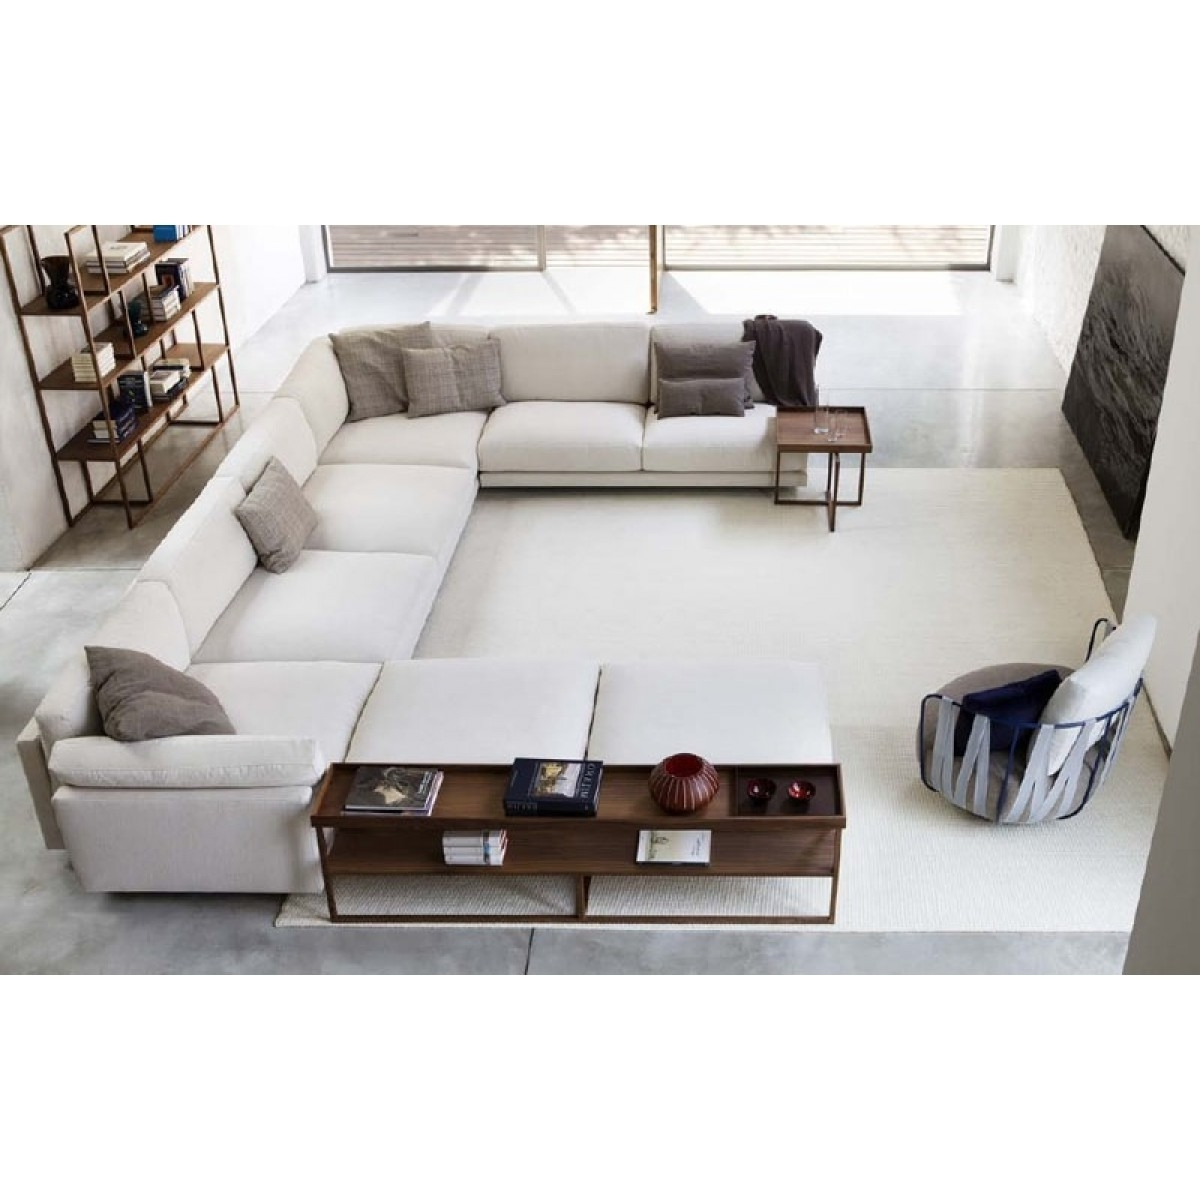 Deep U Shaped Sectionals Throughout Well Known Luxury Living Room Style Ideas With White U Shaped Extra Deep Sofa (View 6 of 15)